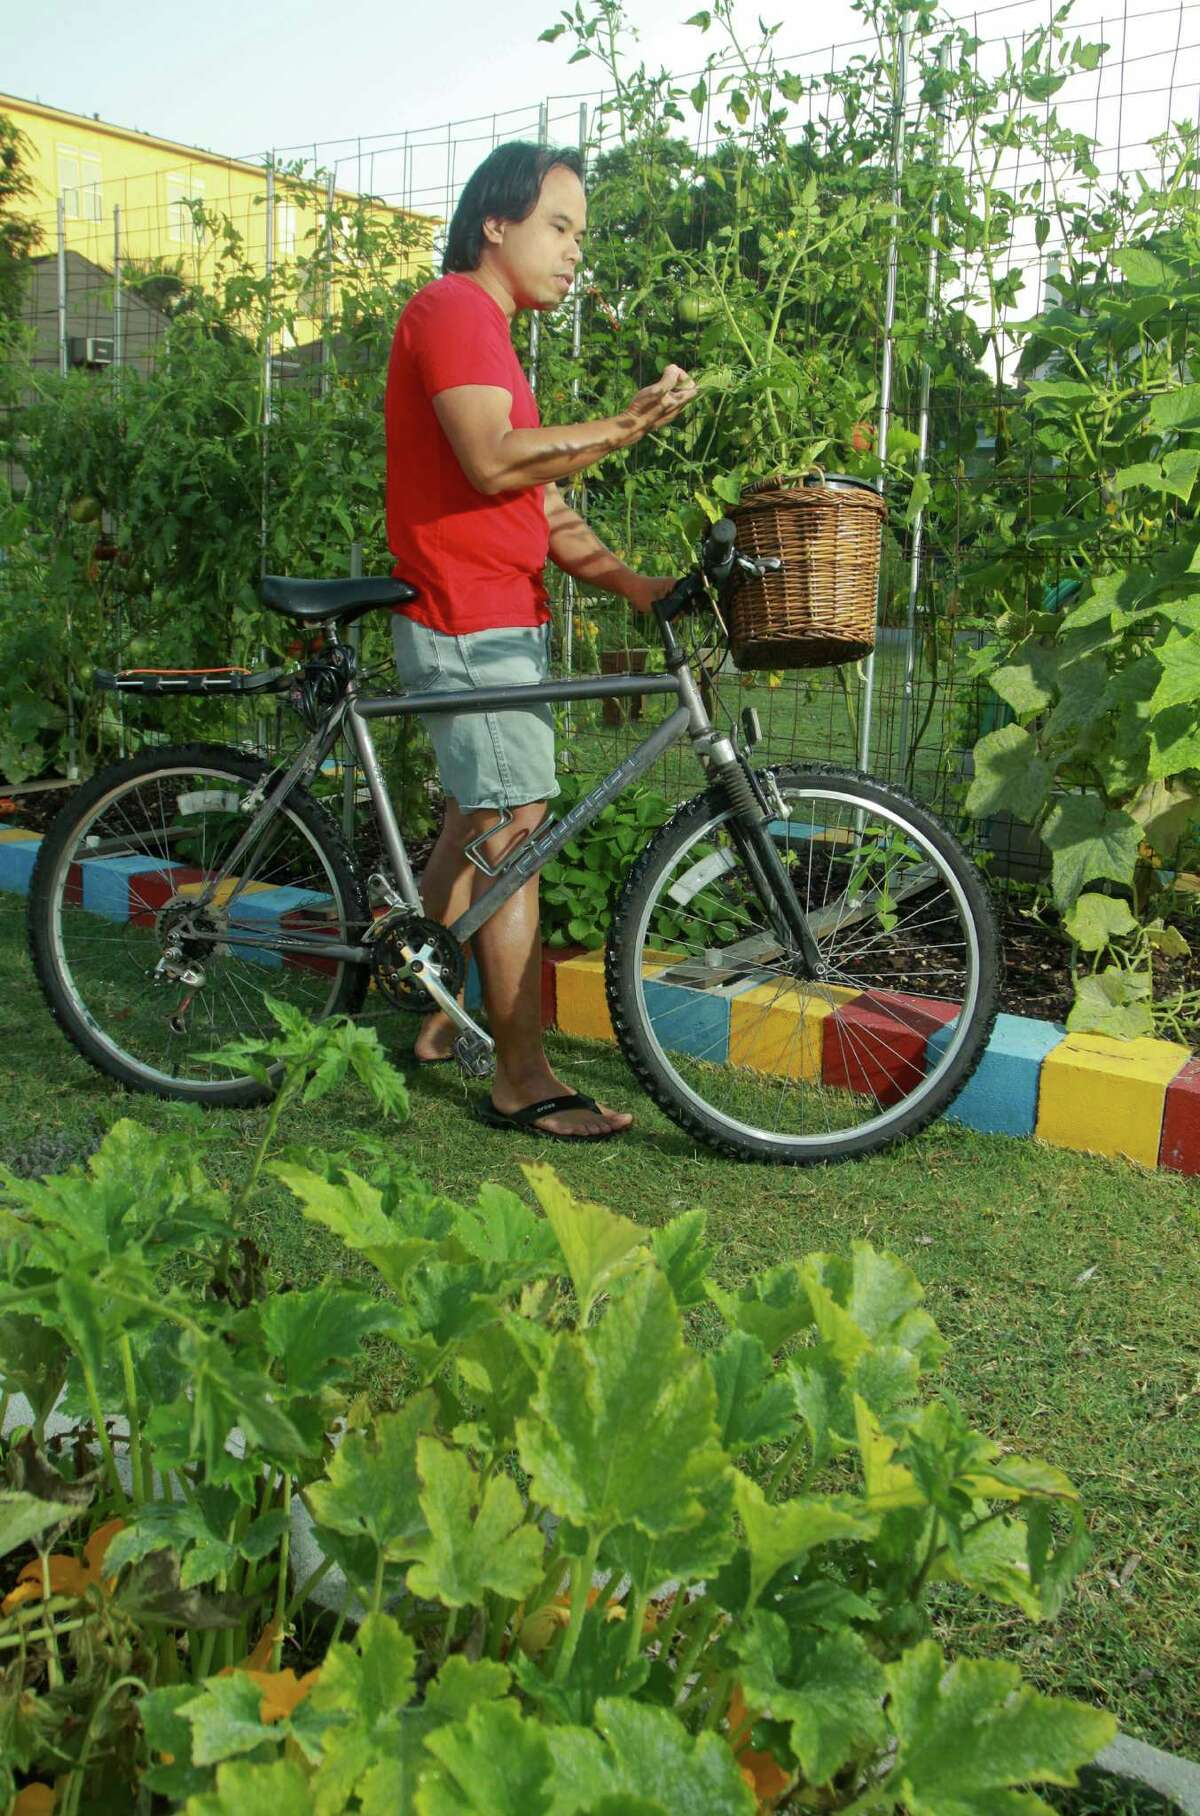 (For the Chronicle/Gary Fountain, May 17, 2012) Wing Tse at the Midtown Community Garden at the corner of Drew and Baldwin with a Sun Gold cherry tomato plant in the basket of his bicycle.